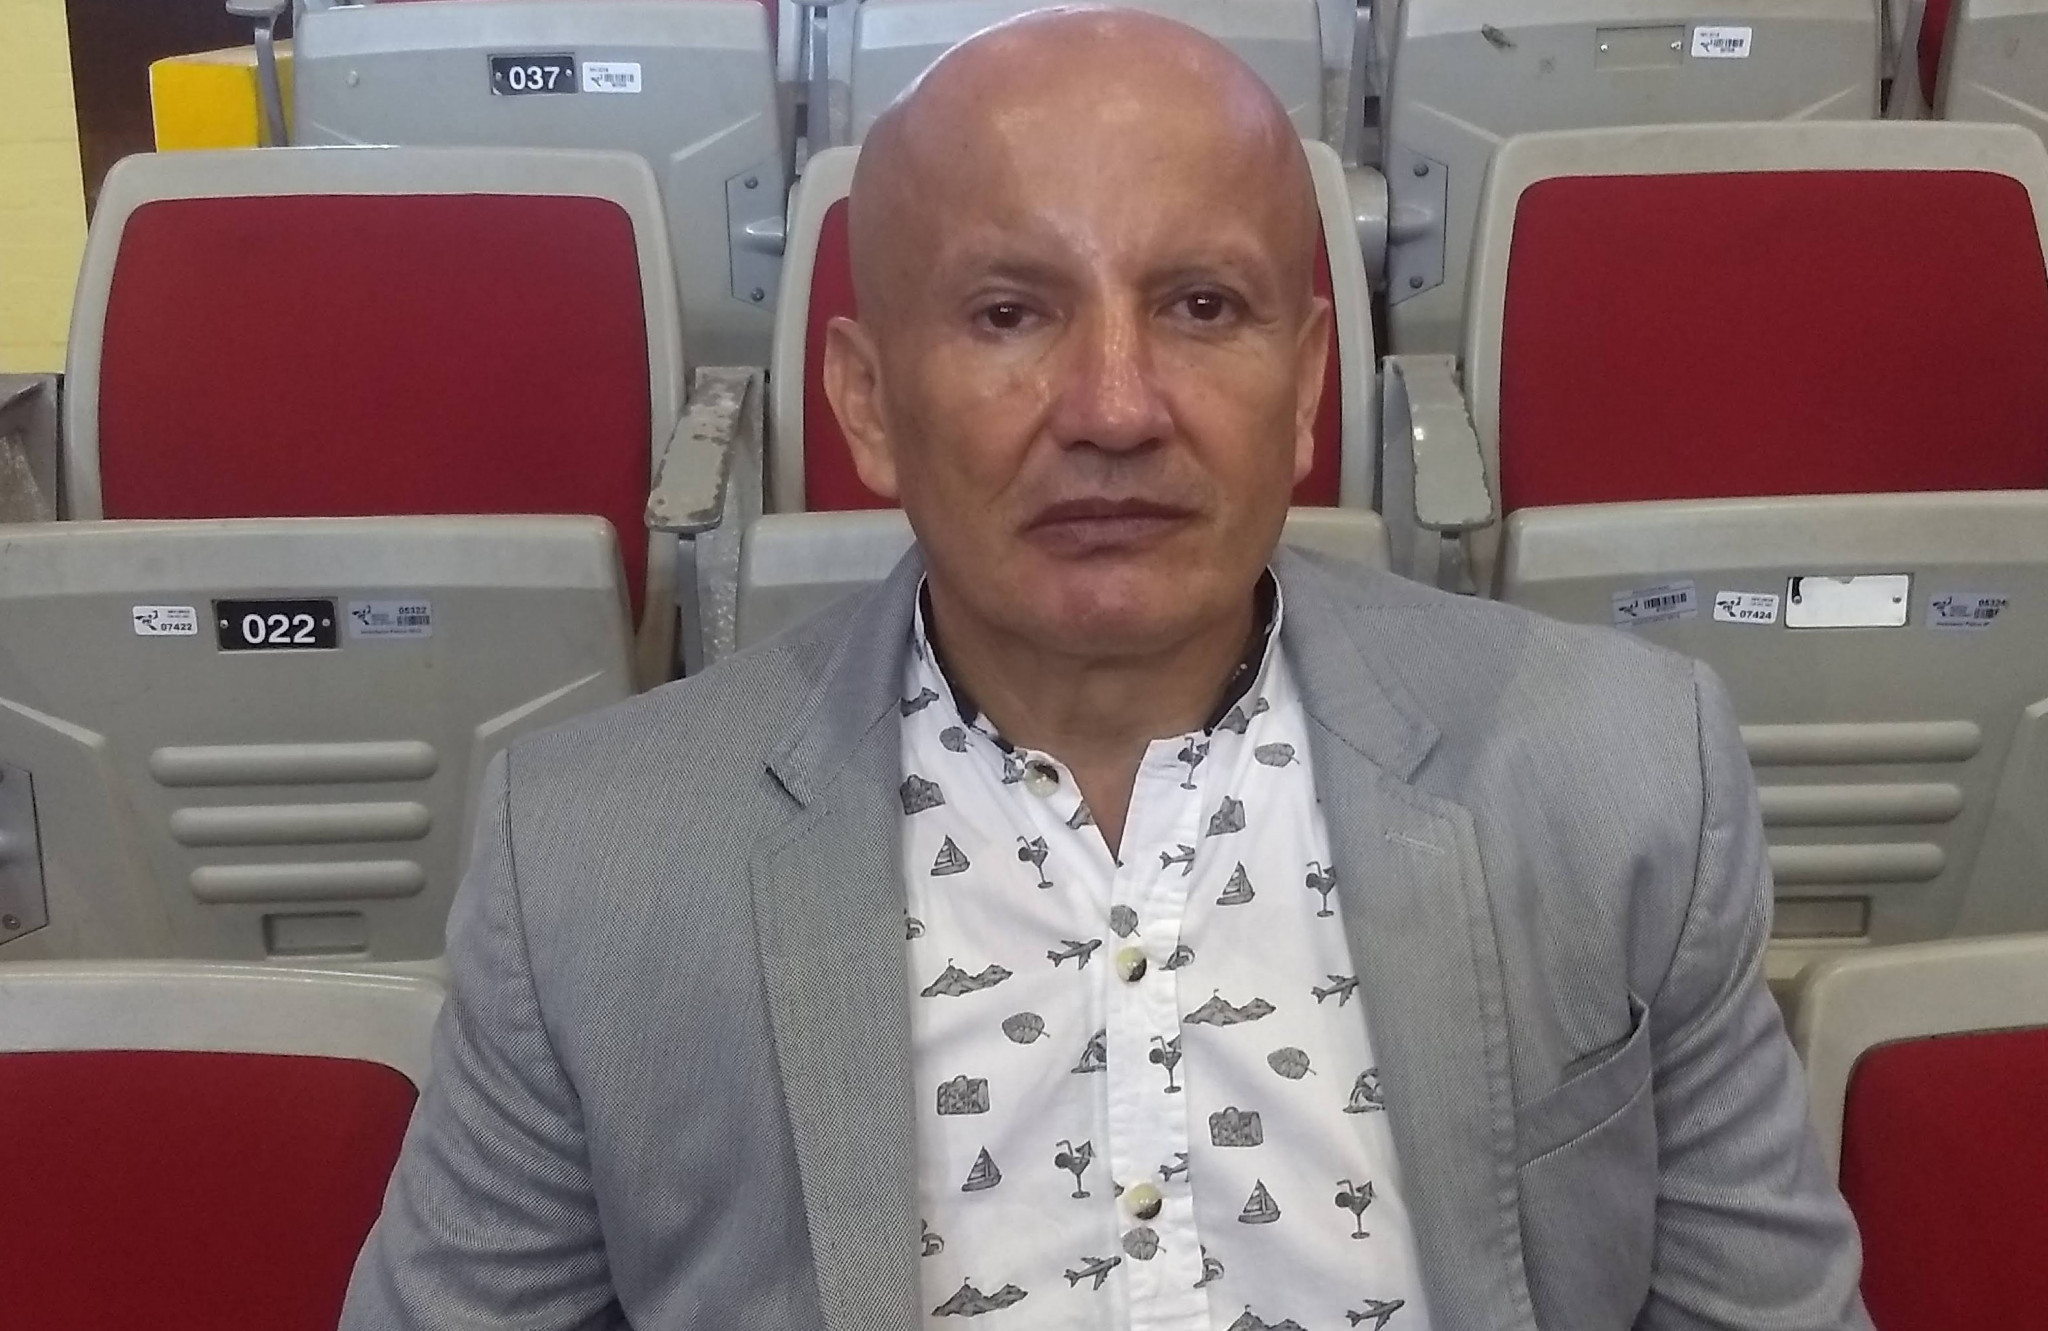 Colombian Weightlifting Federation President William Pena described the appeals process as